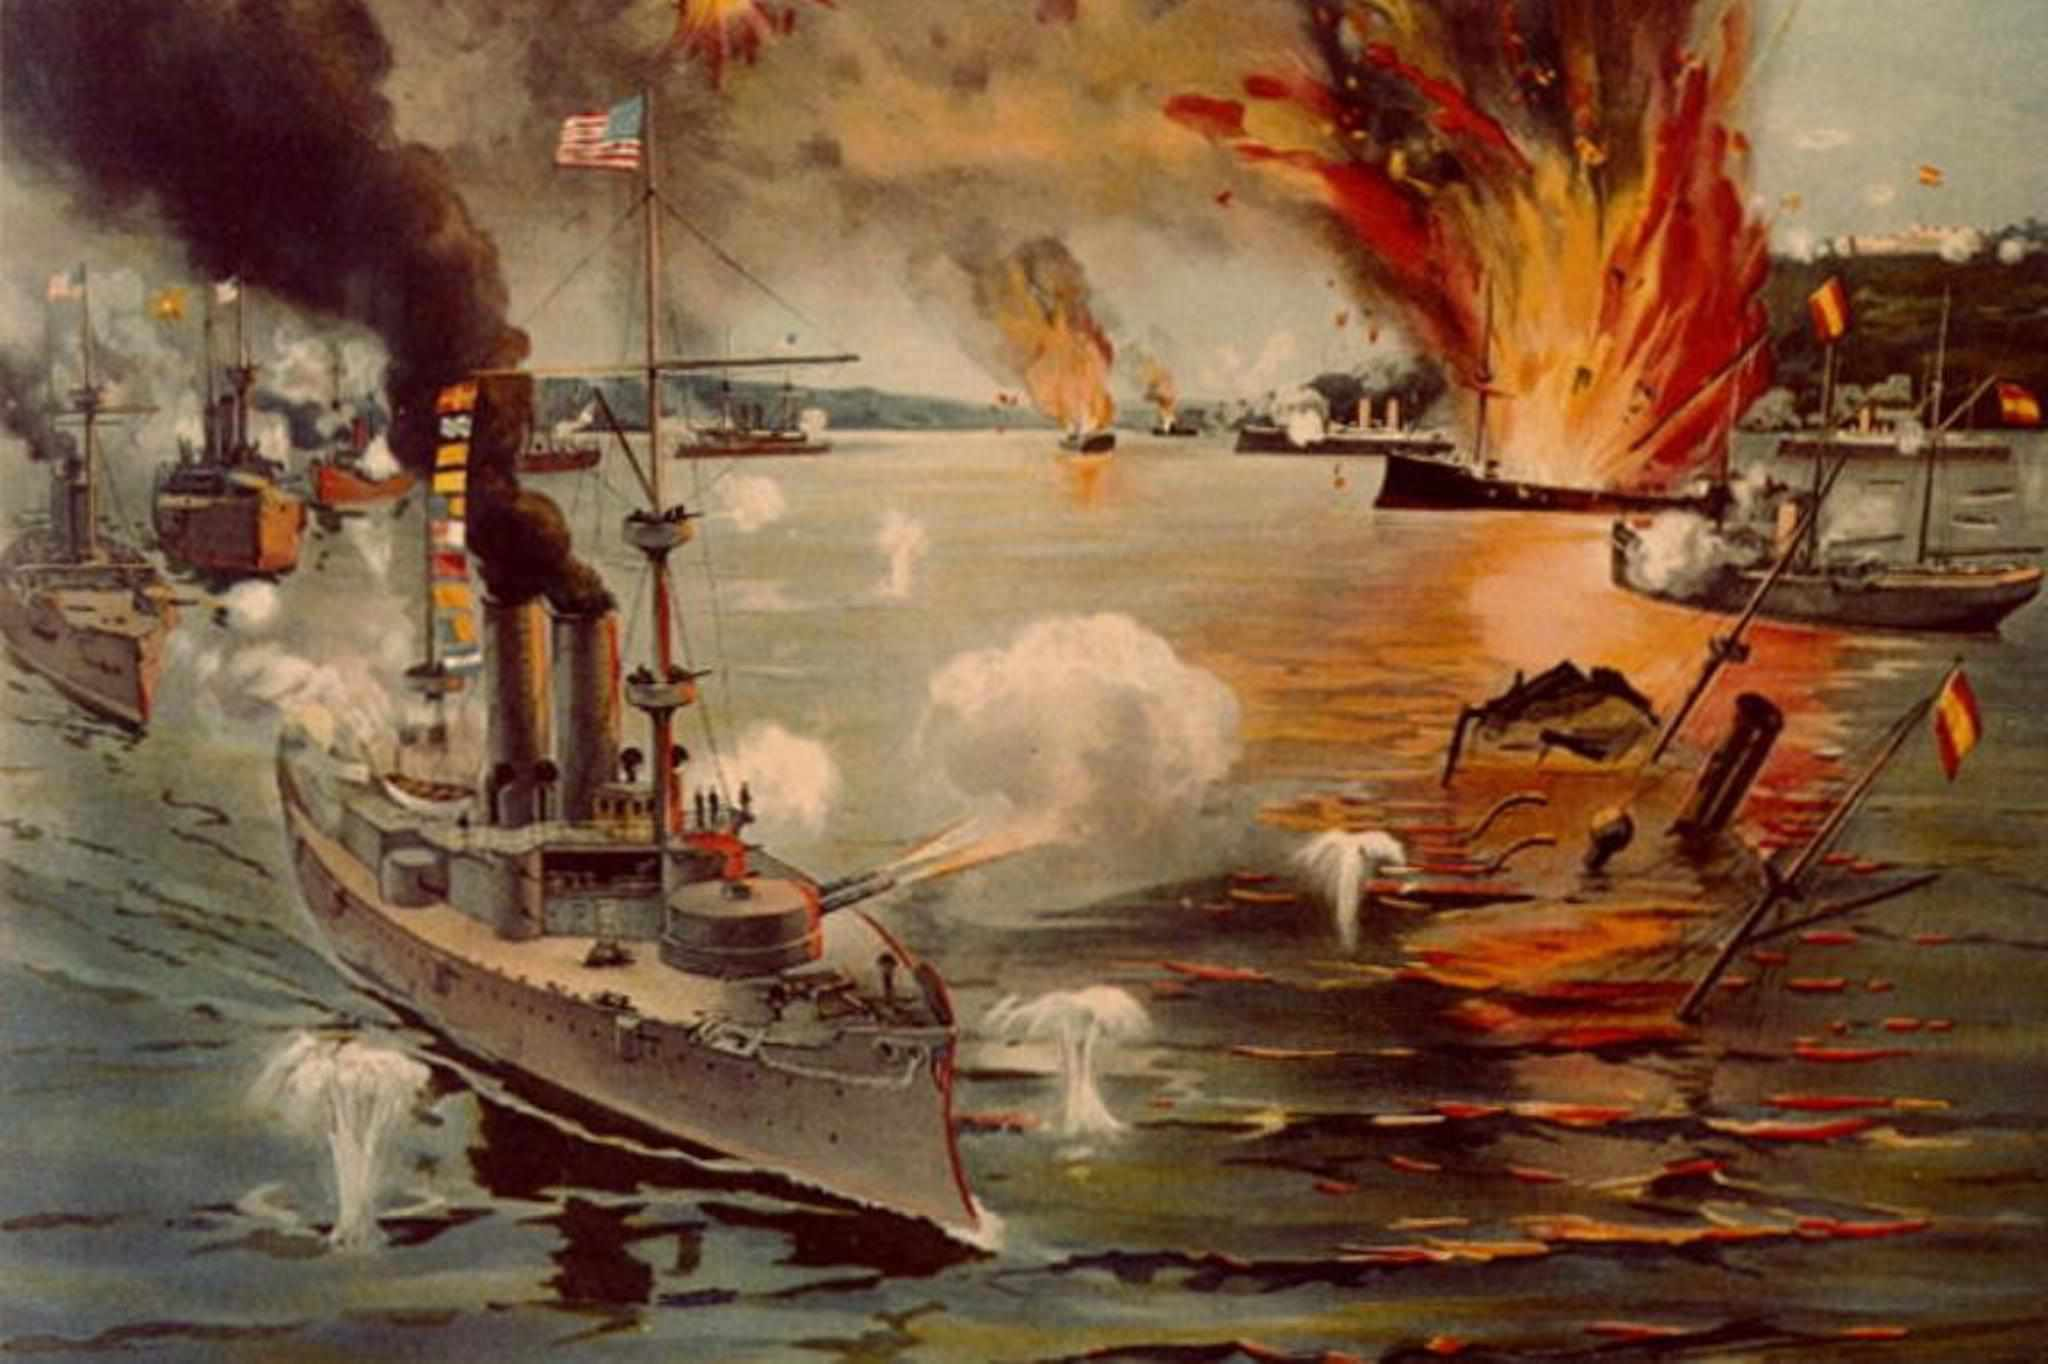 American warships firing at the Spanish during the Battle of Manila Bay.